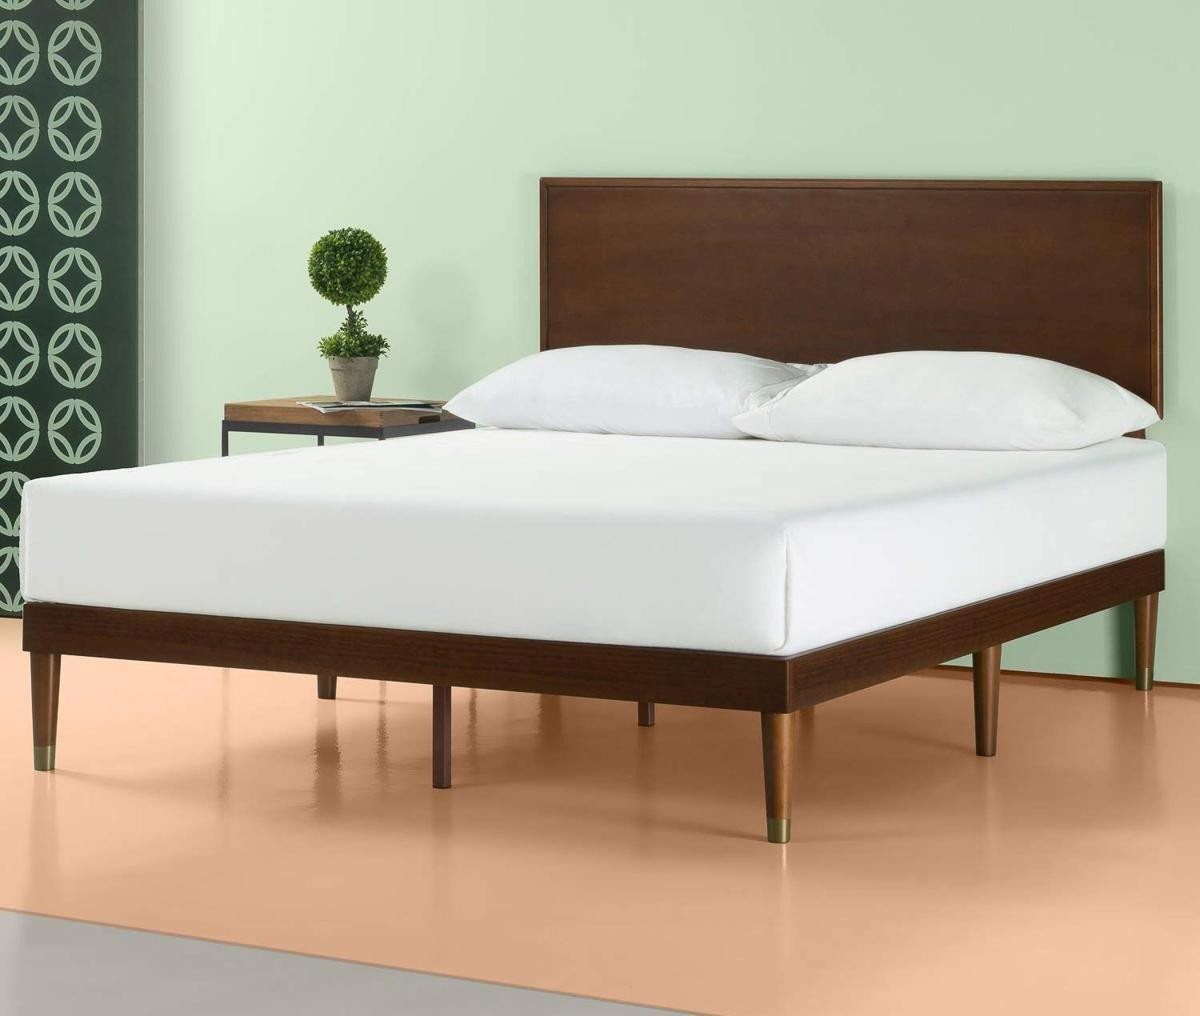 Bedroom Set Full Size Bed Best Of Get A West Elm Look for Under $300 with This Mid Century Bed